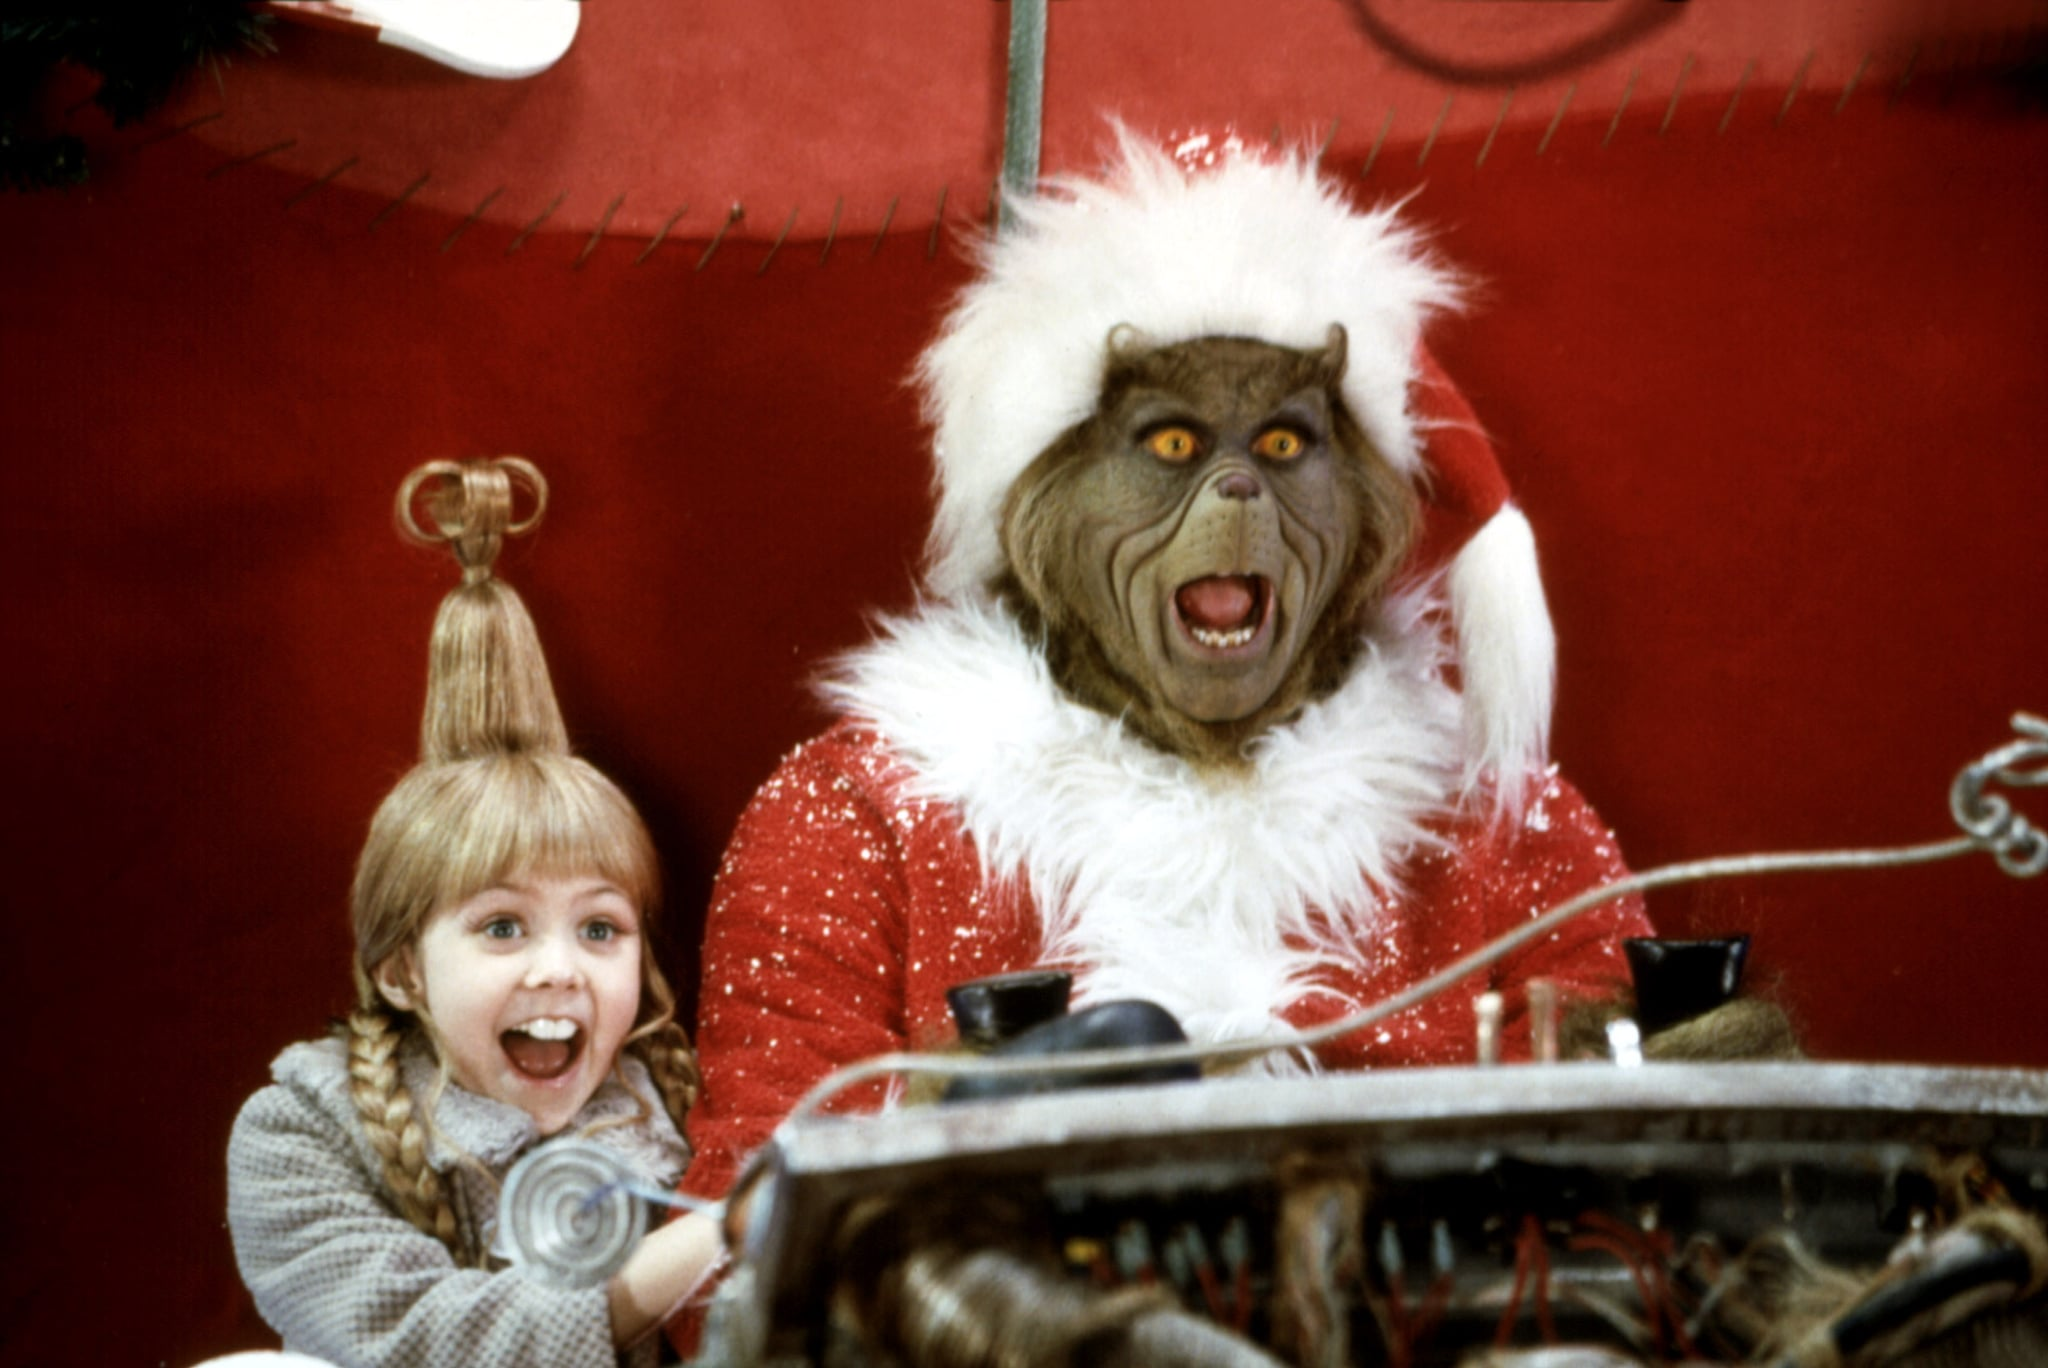 How The Grinch Stole Christmas 2000 Early 2000s Movies Streaming On Netflix Uk Popsugar Entertainment Uk Photo 21